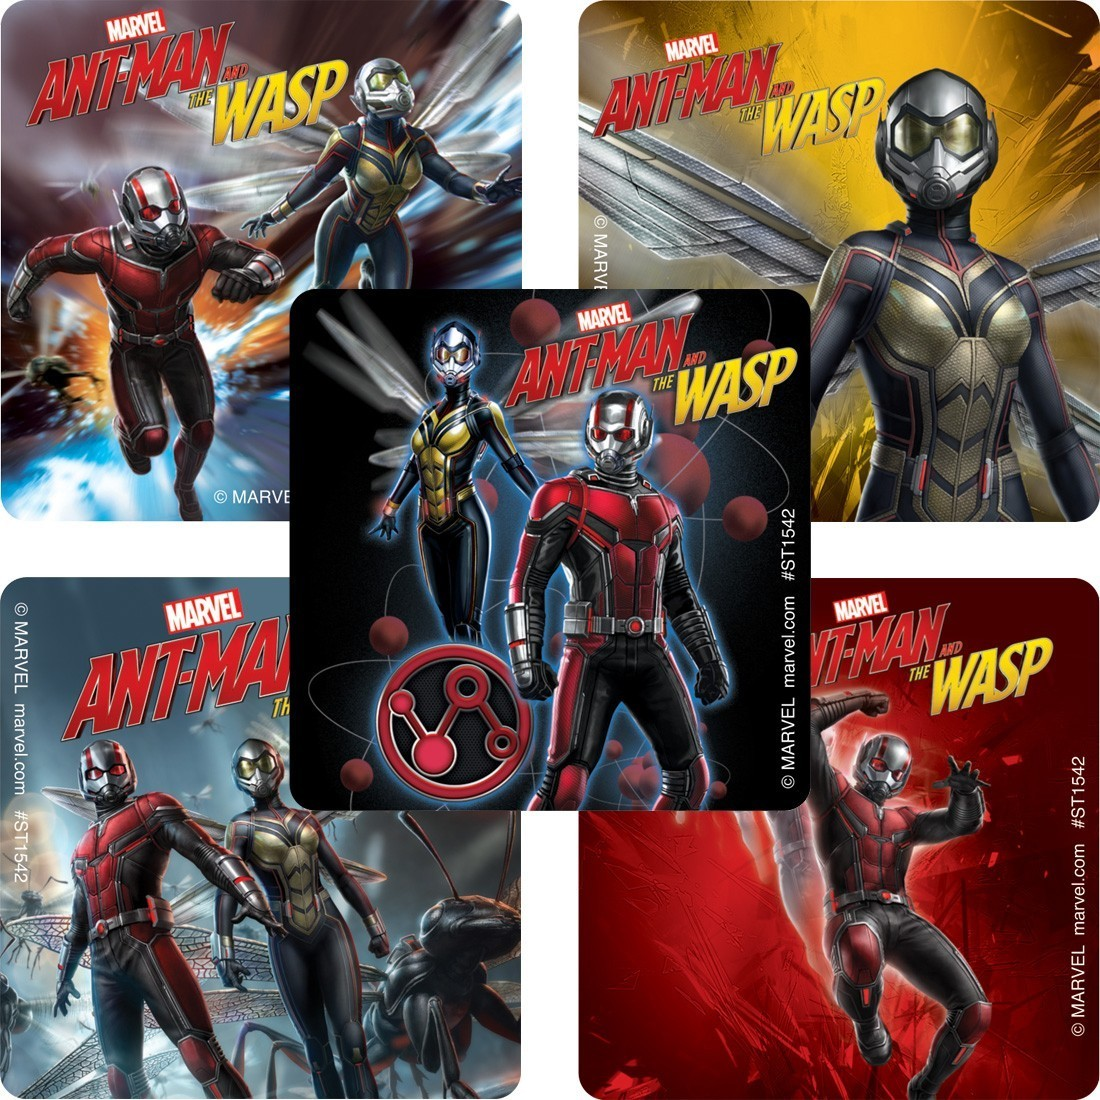 Marvel™ Ant Man & Wasp Movie Stickers [image]